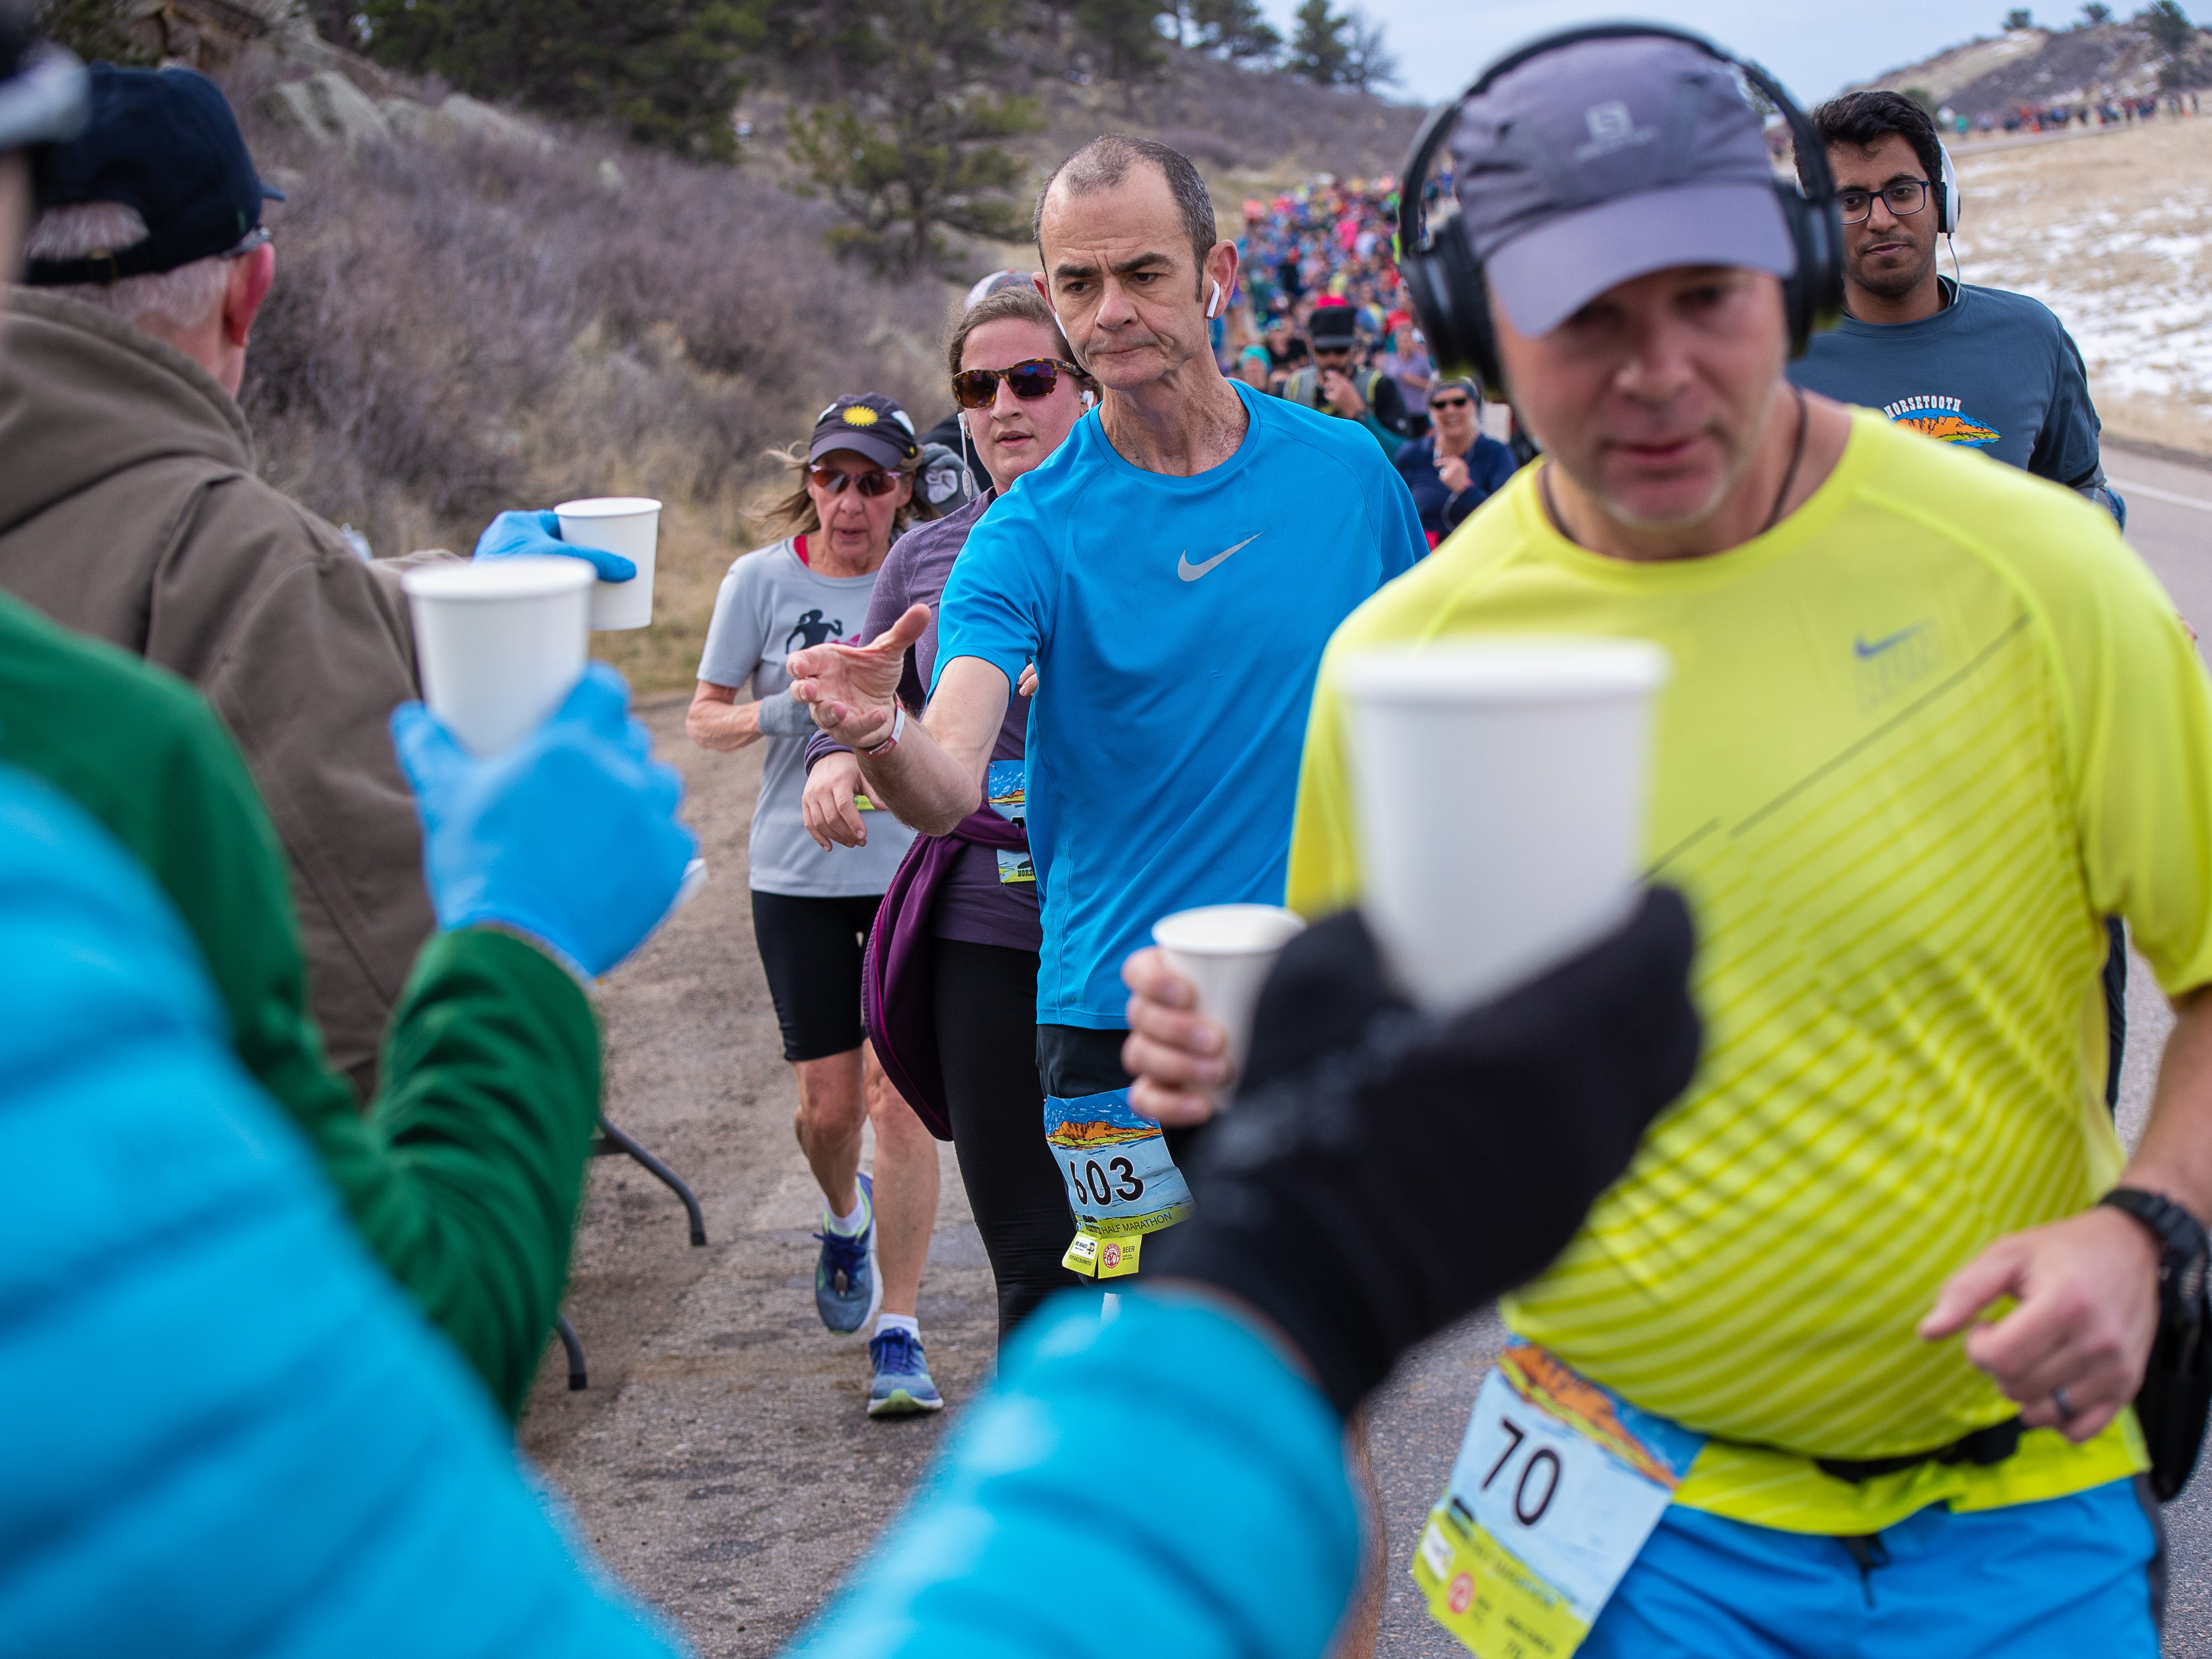 Runners slow down for water at a first aid station along the route of the Horsetooth Half Marathon on Sunday, April 14, 2019, in Fort Collins, Colo.